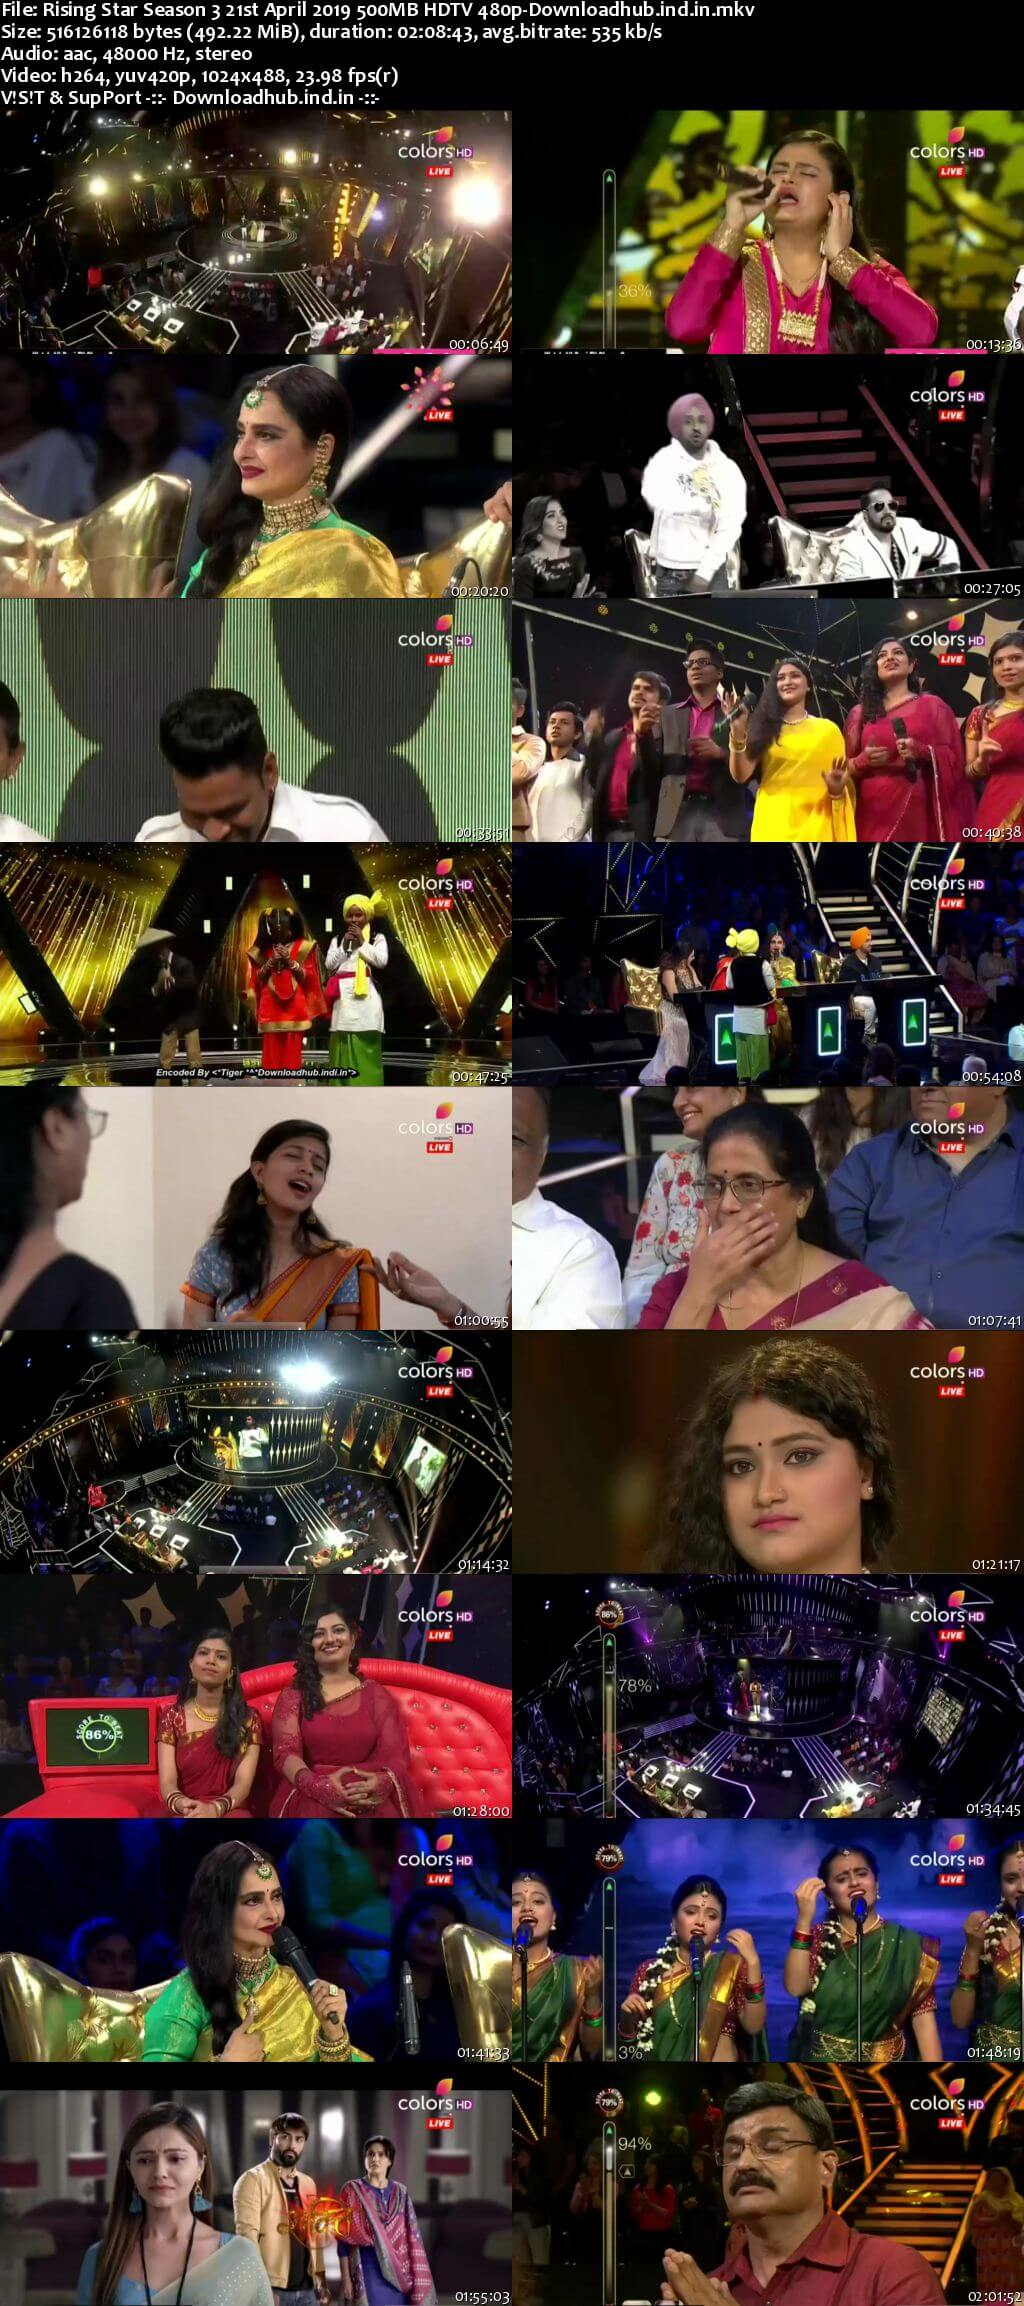 Rising Star Season 3 21 April 2019 Episode 11 HDTV 480p